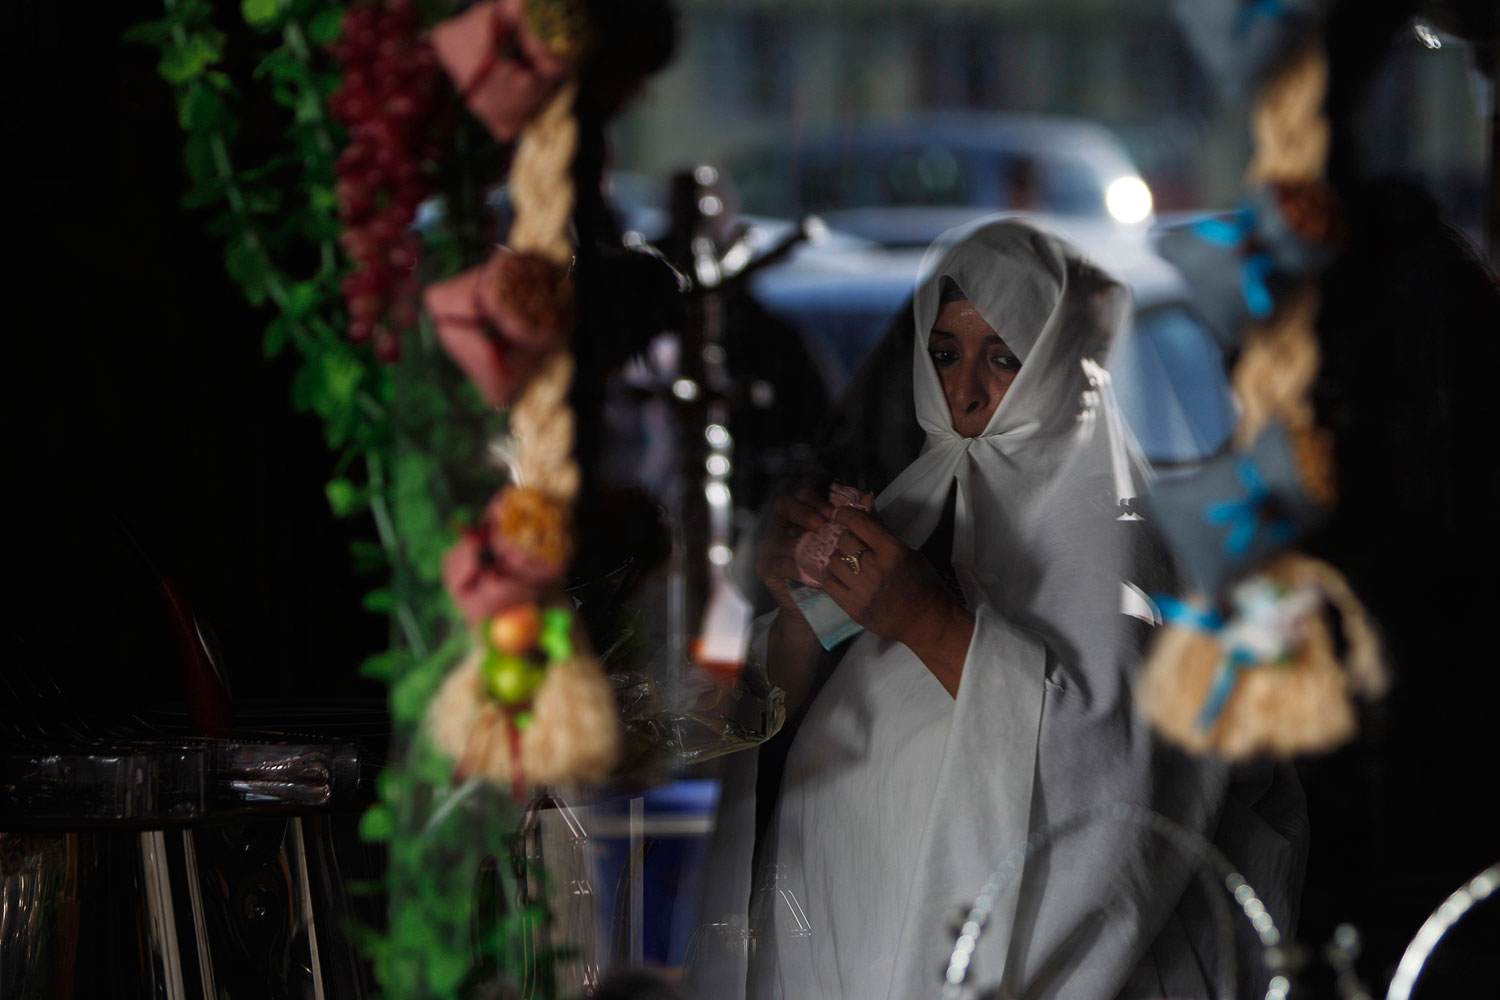 July 29, 2011. A Libyan woman is seen through a store window as she shops at a market in downtown Tripoli, Libya. A rebel special forces member accused fellow Libyan rebels of killing the movement's military chief, pointing to a potentially major split in the ranks of the opposition battling Moammar Gaddafi.